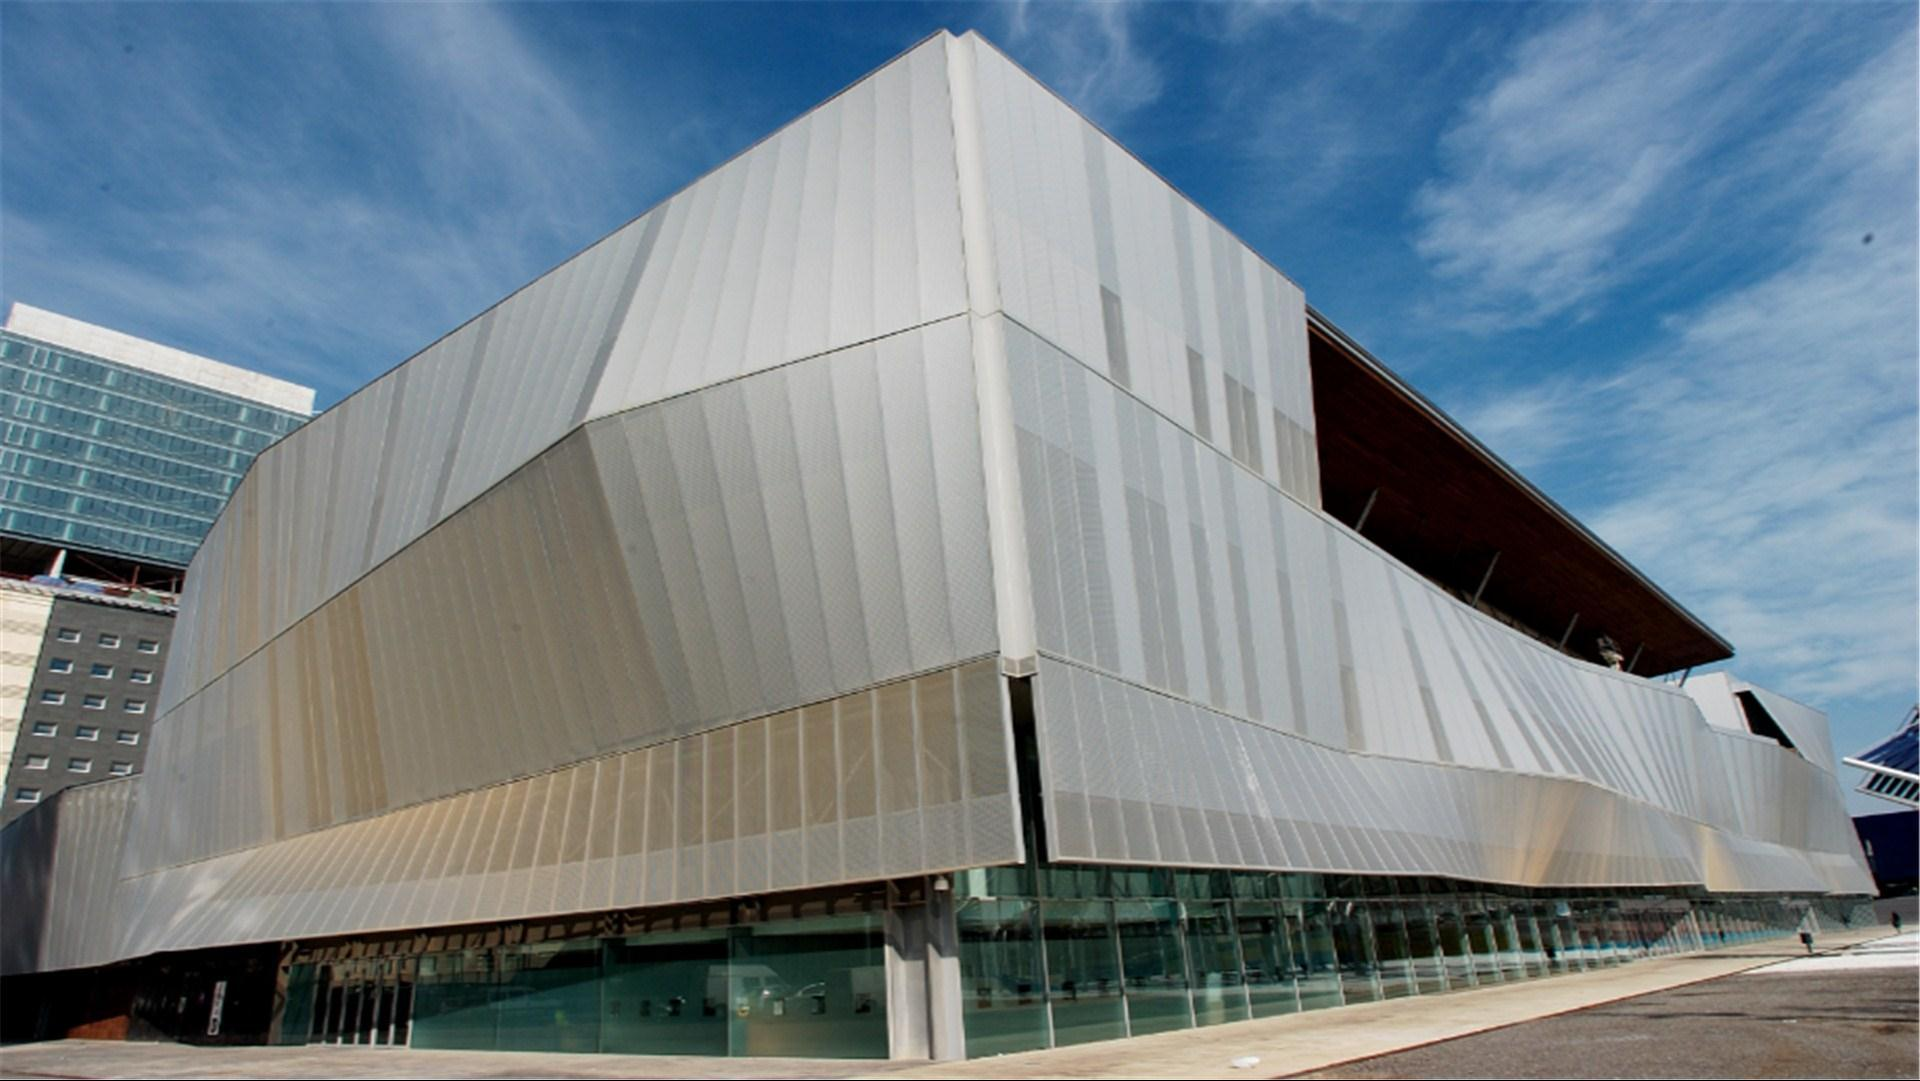 Barcelona International Convention Centre